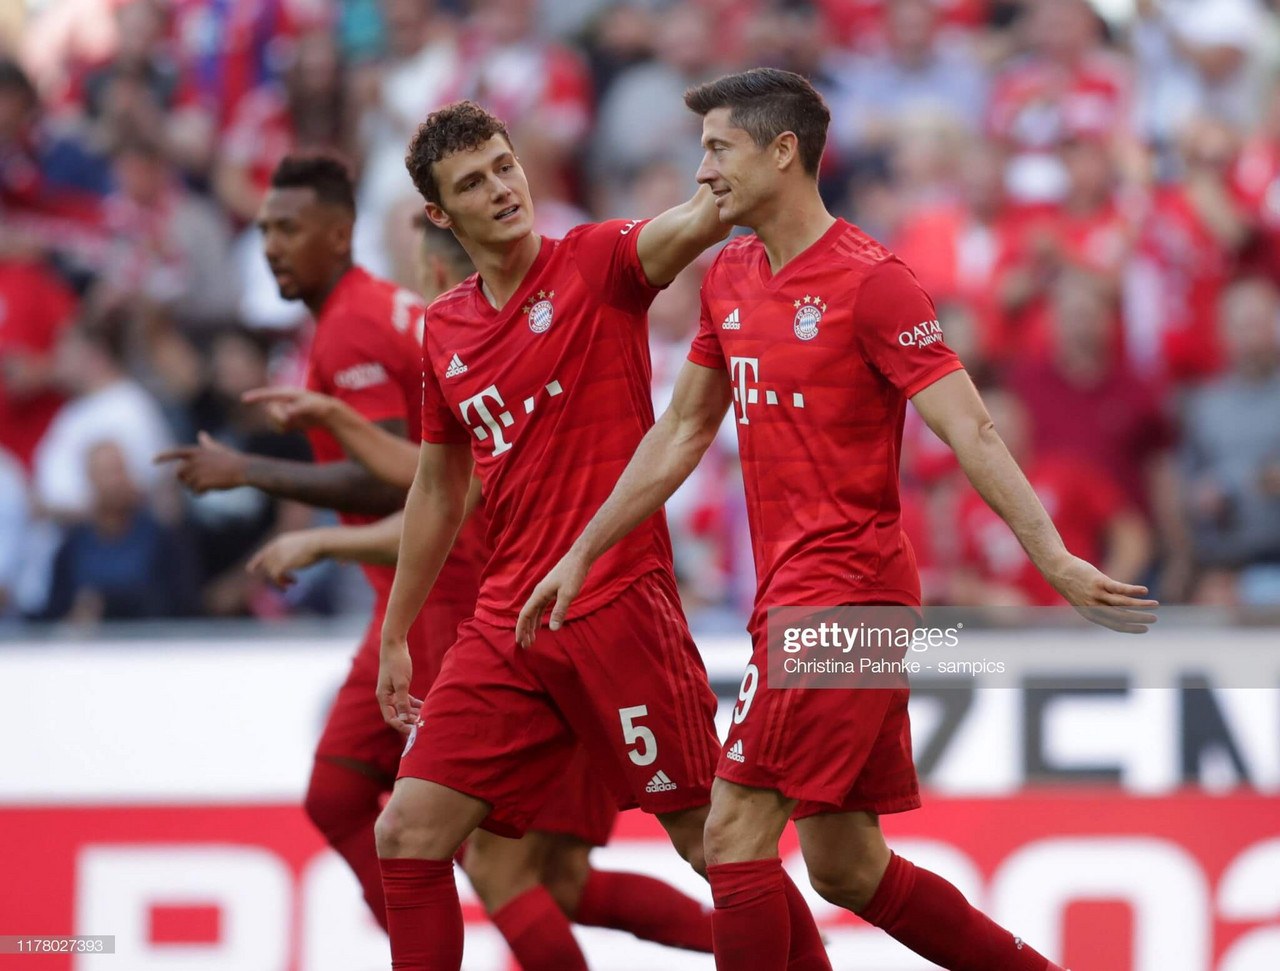 FC Koln vs Bayern Munich preview